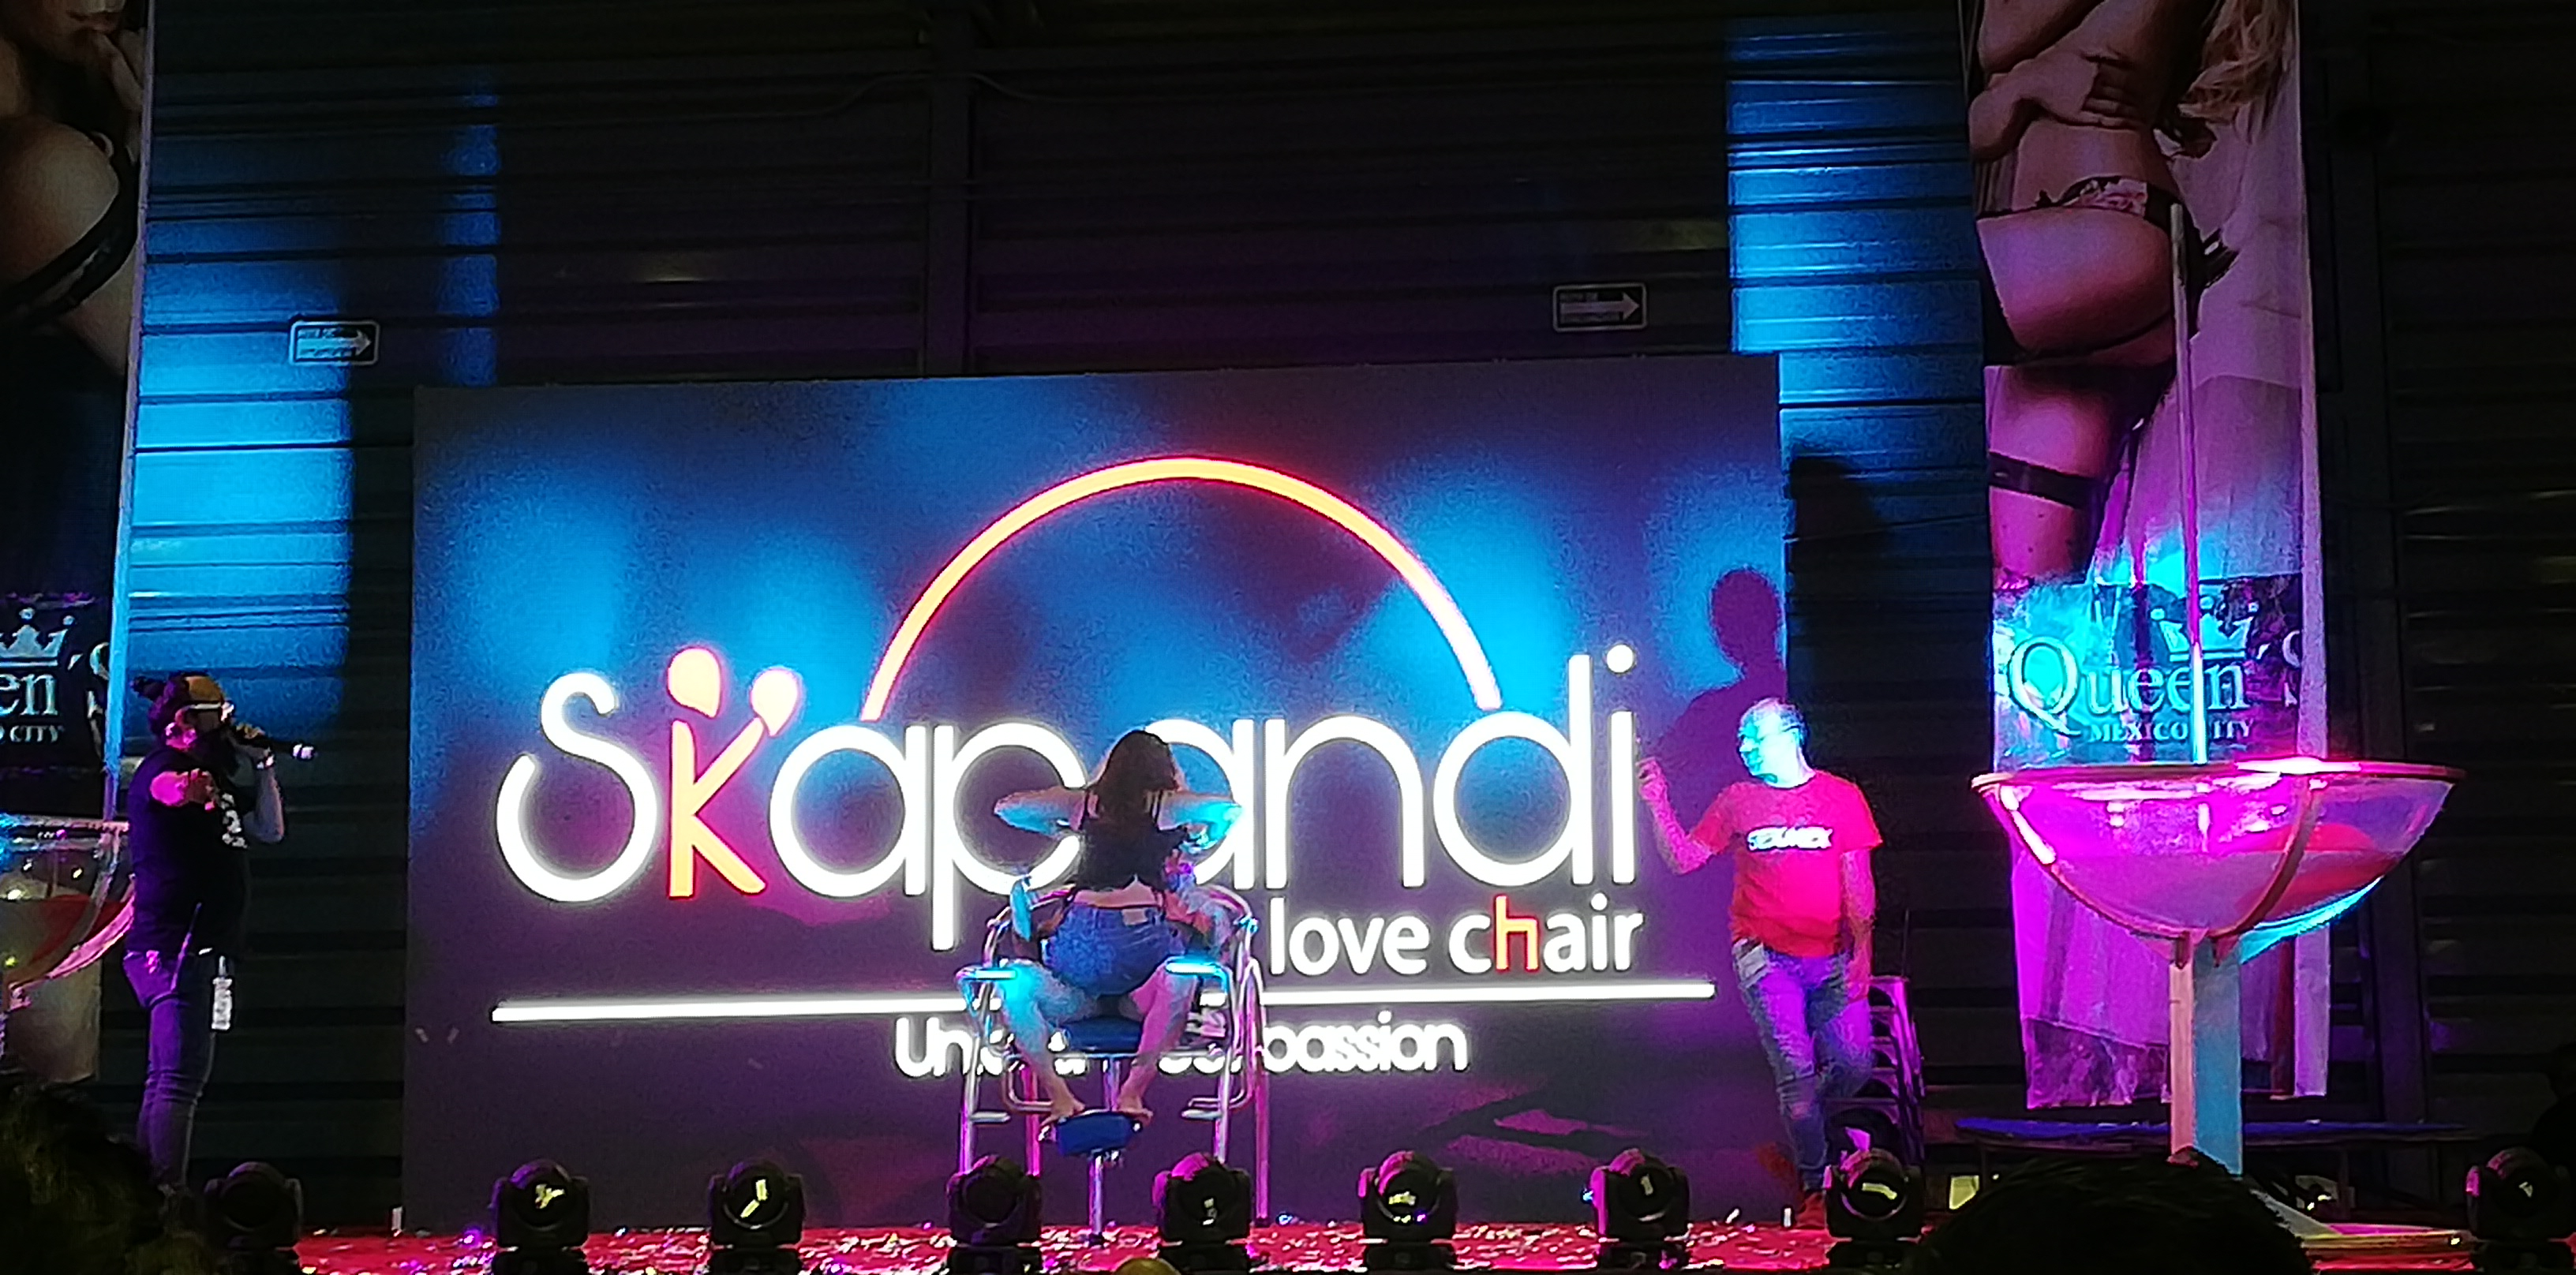 Skapandi Love Chair